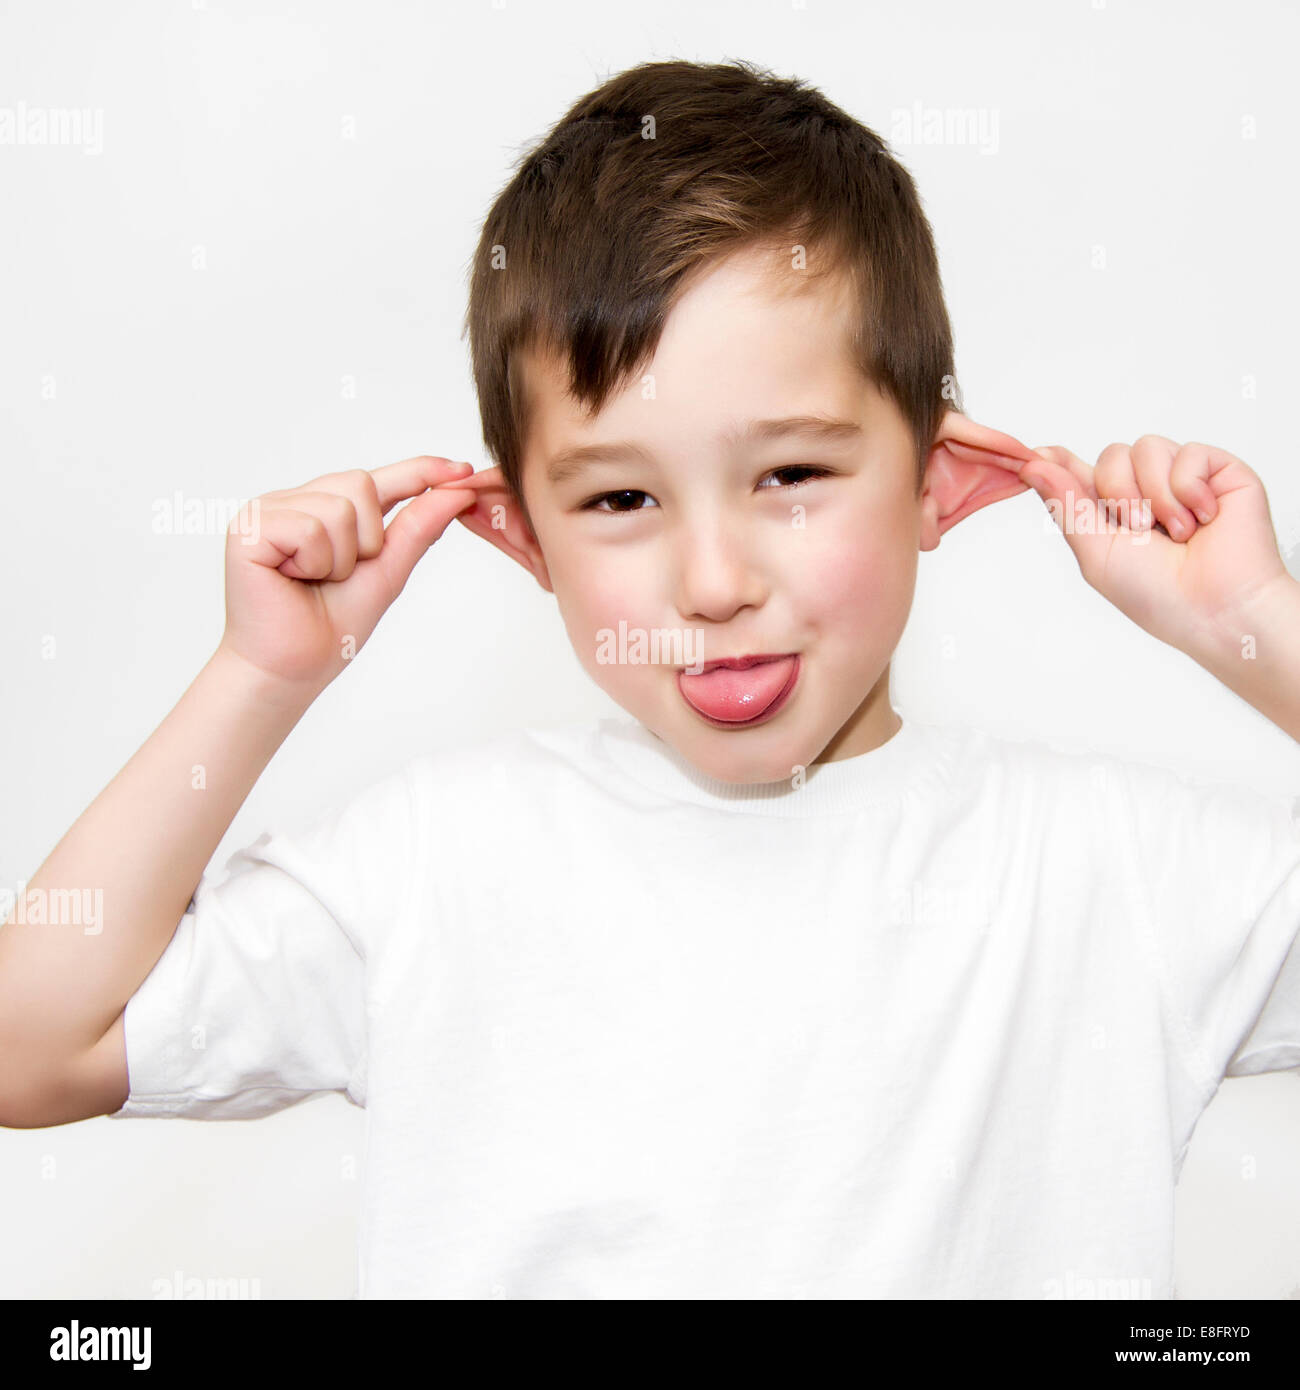 Boy pulling funny face - Stock Image